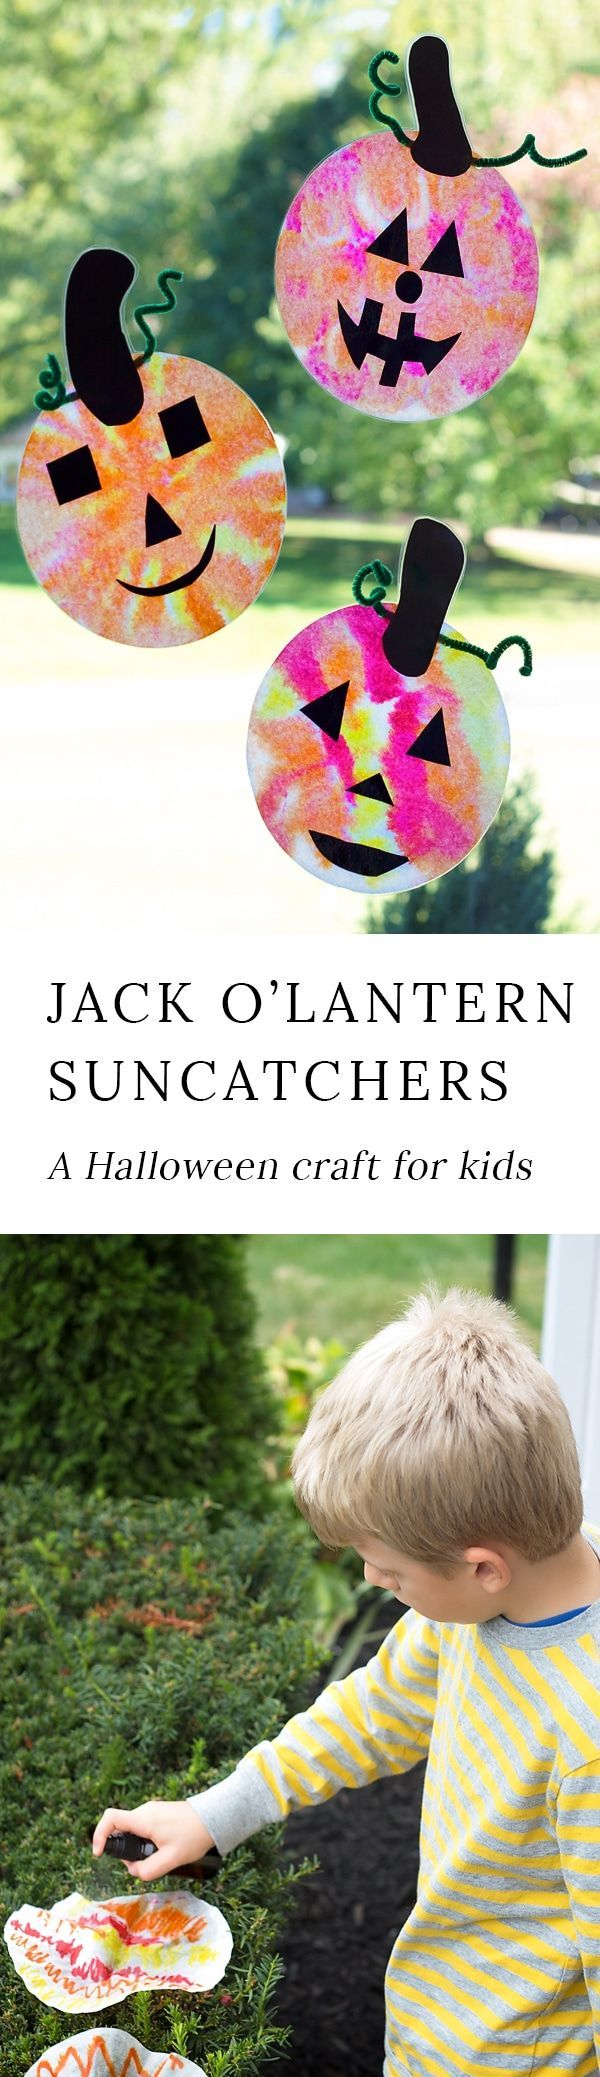 Just in time for Halloween, learn how to make adorable and simple jack o'lantern suncatchers with markers, coffee filters, and water. #halloween via @https://www.pinterest.com/fireflymudpie/